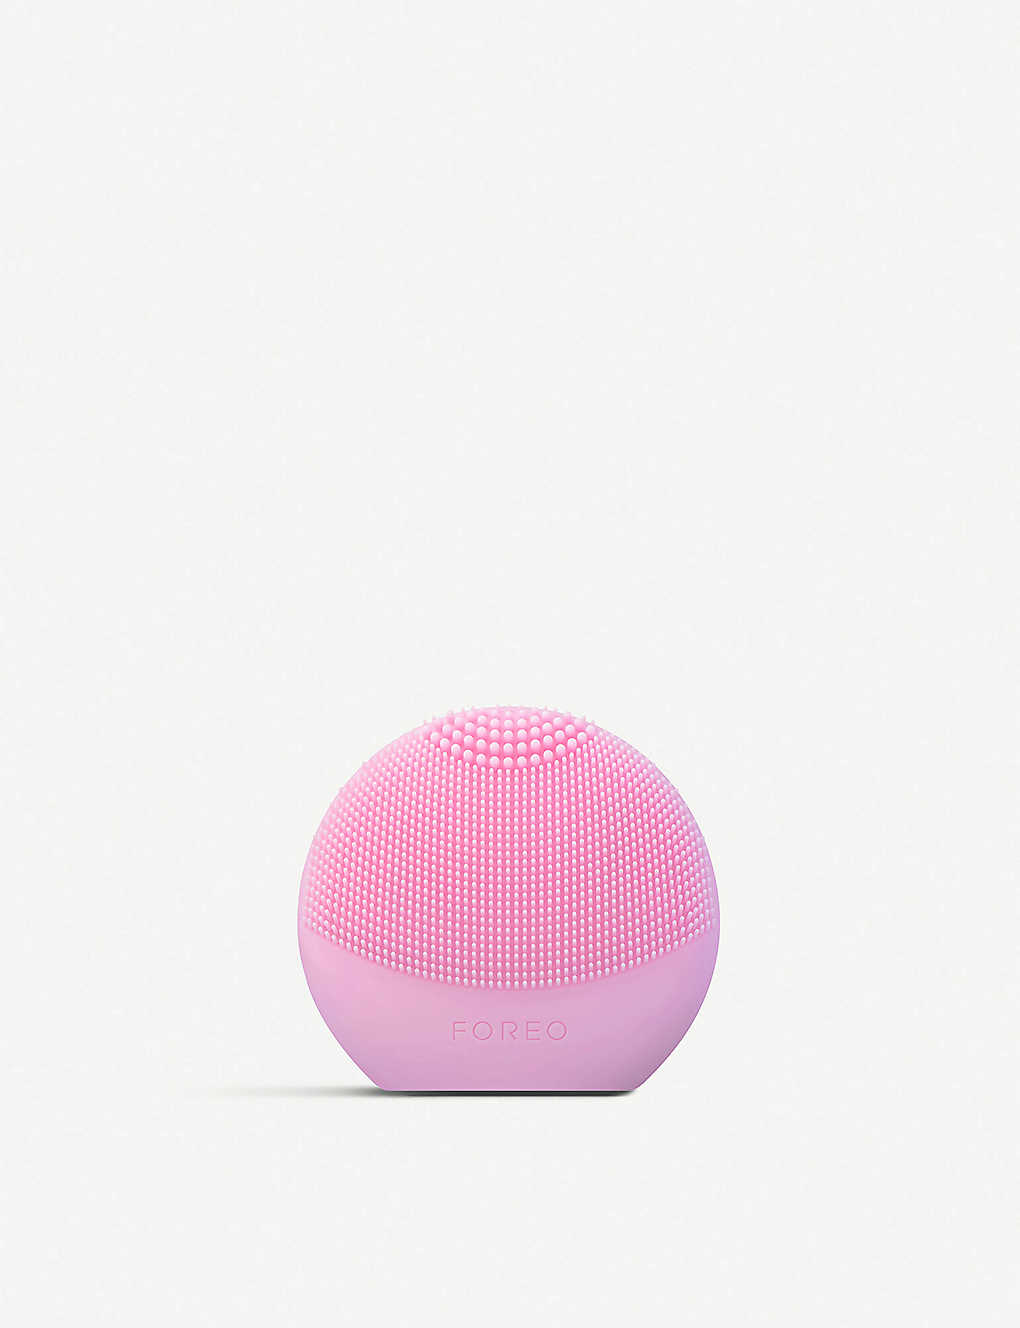 FOREO: LUNA fofo Smart Facial Cleansing Brush and Analyser